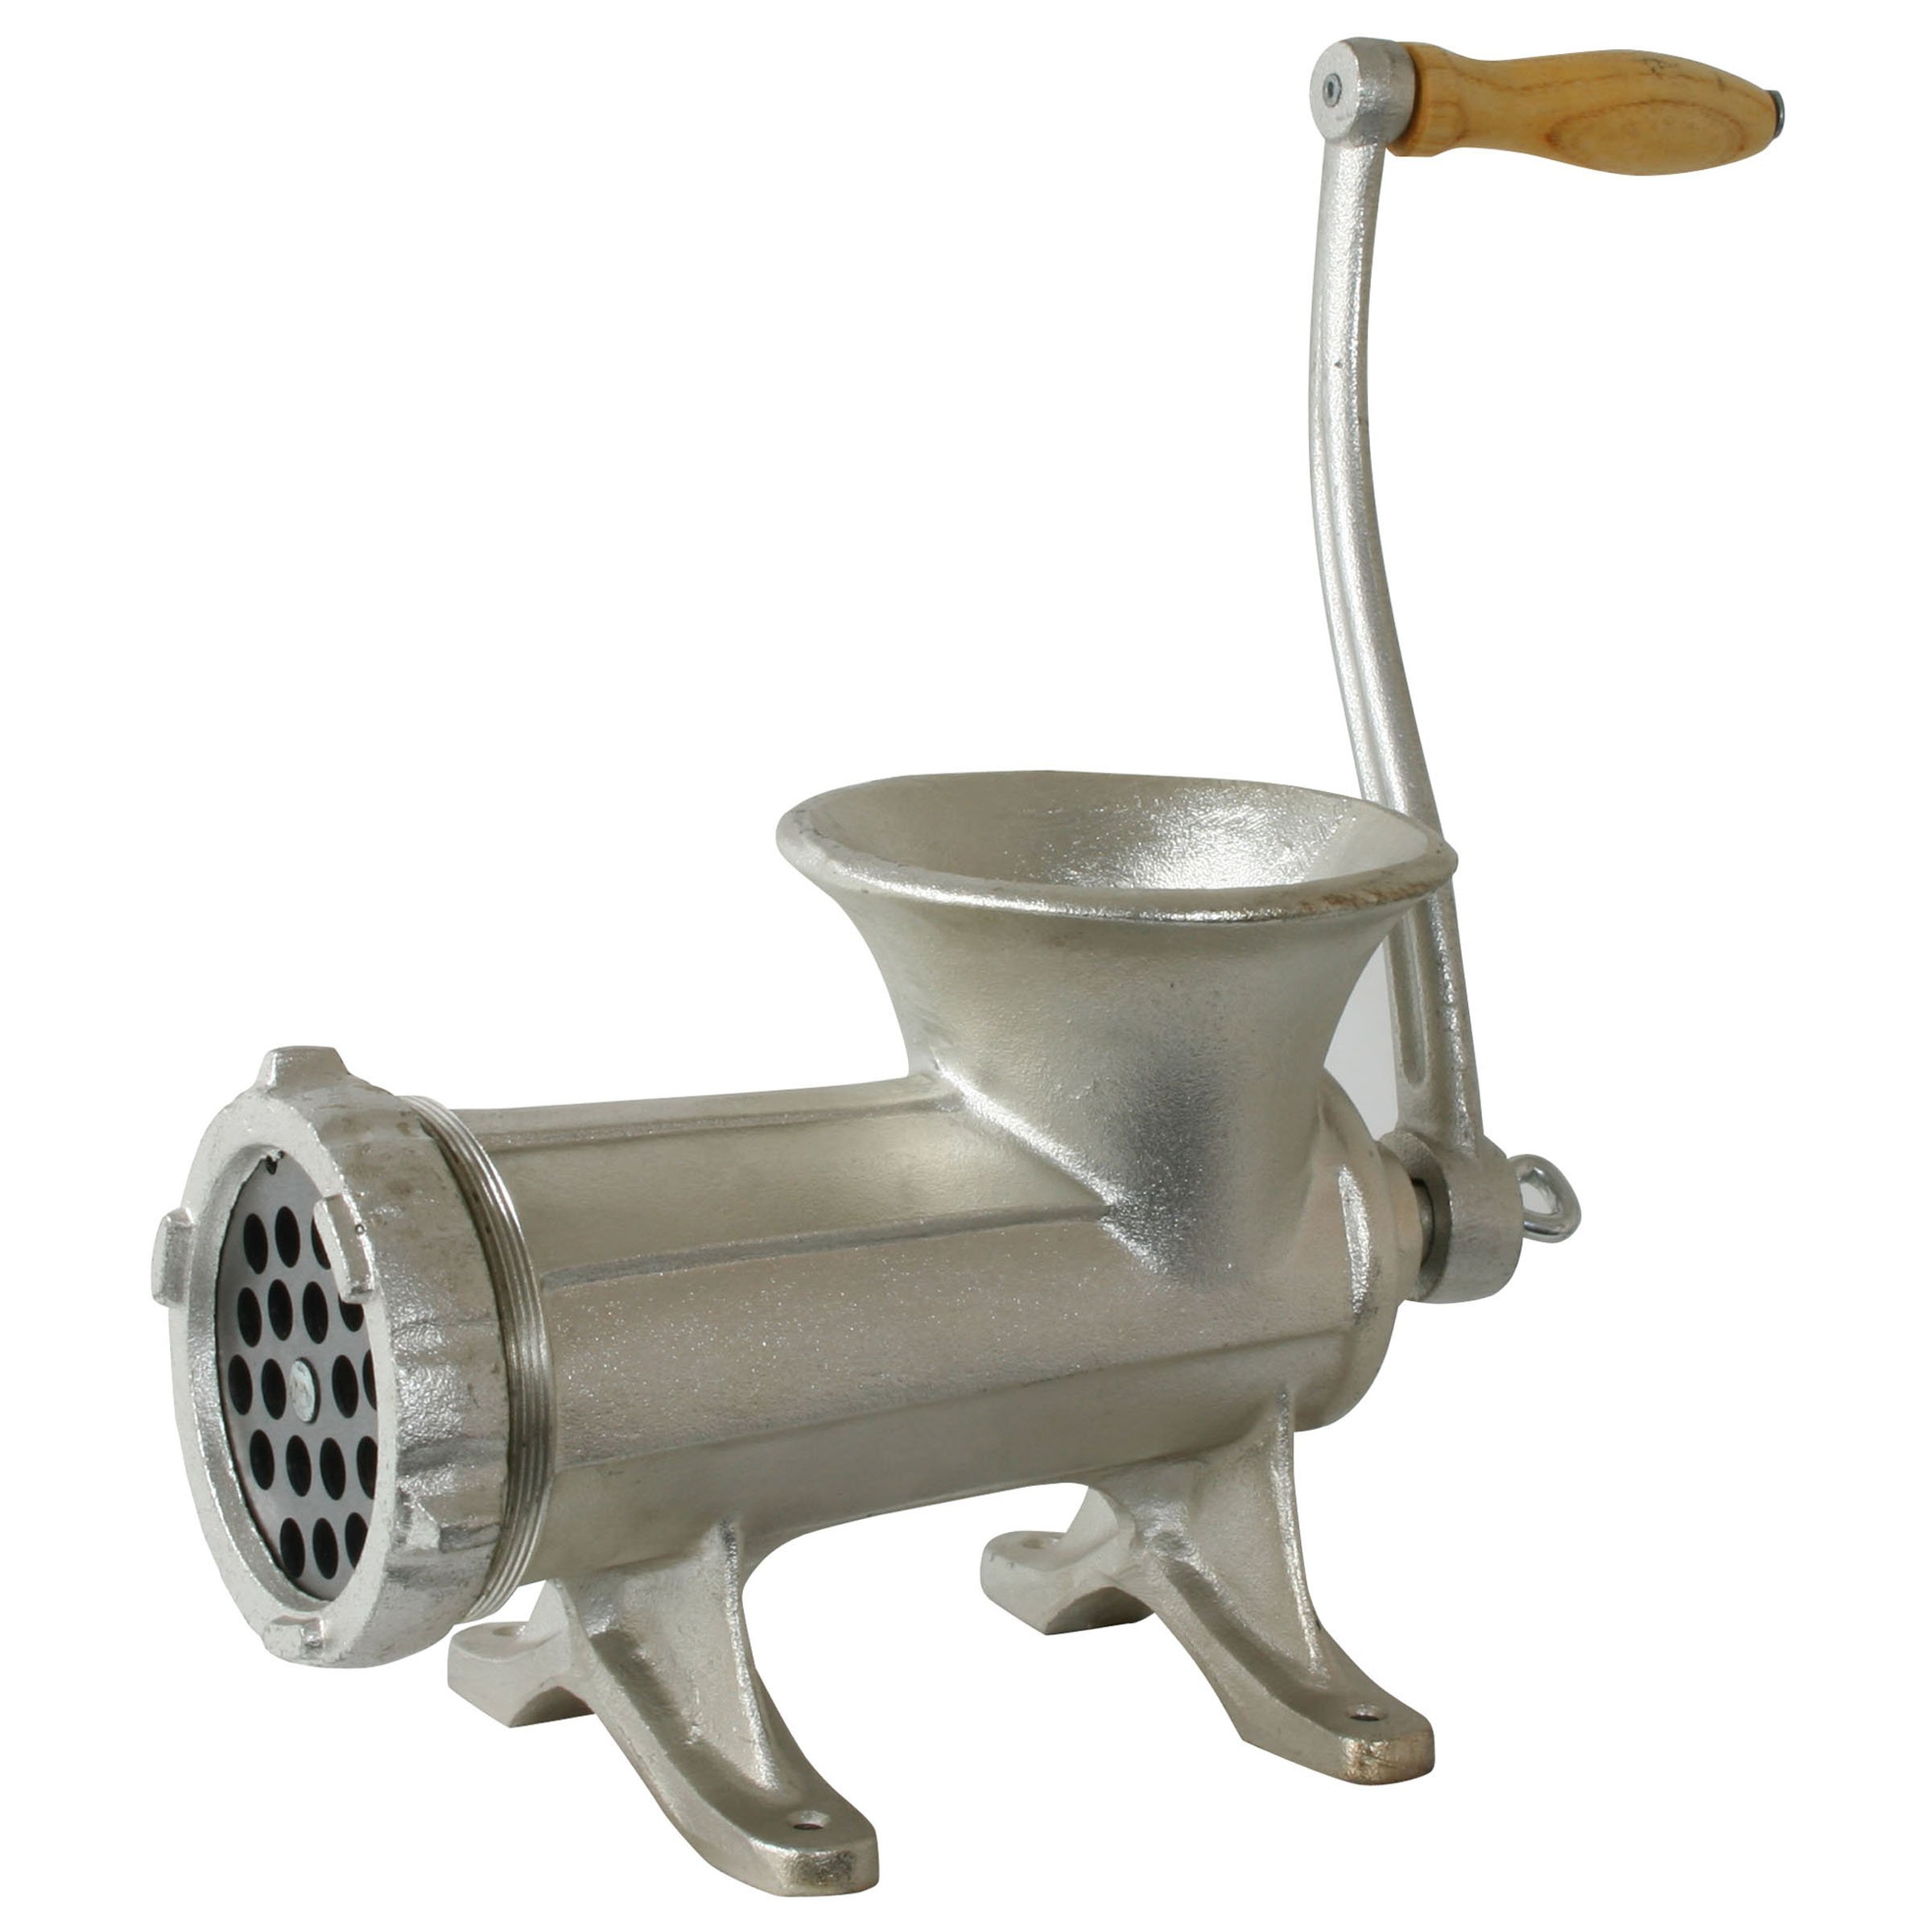 Sportsman MHG32 #32 Cast Iron Countertop Bolt Down Manual Meat Grinder